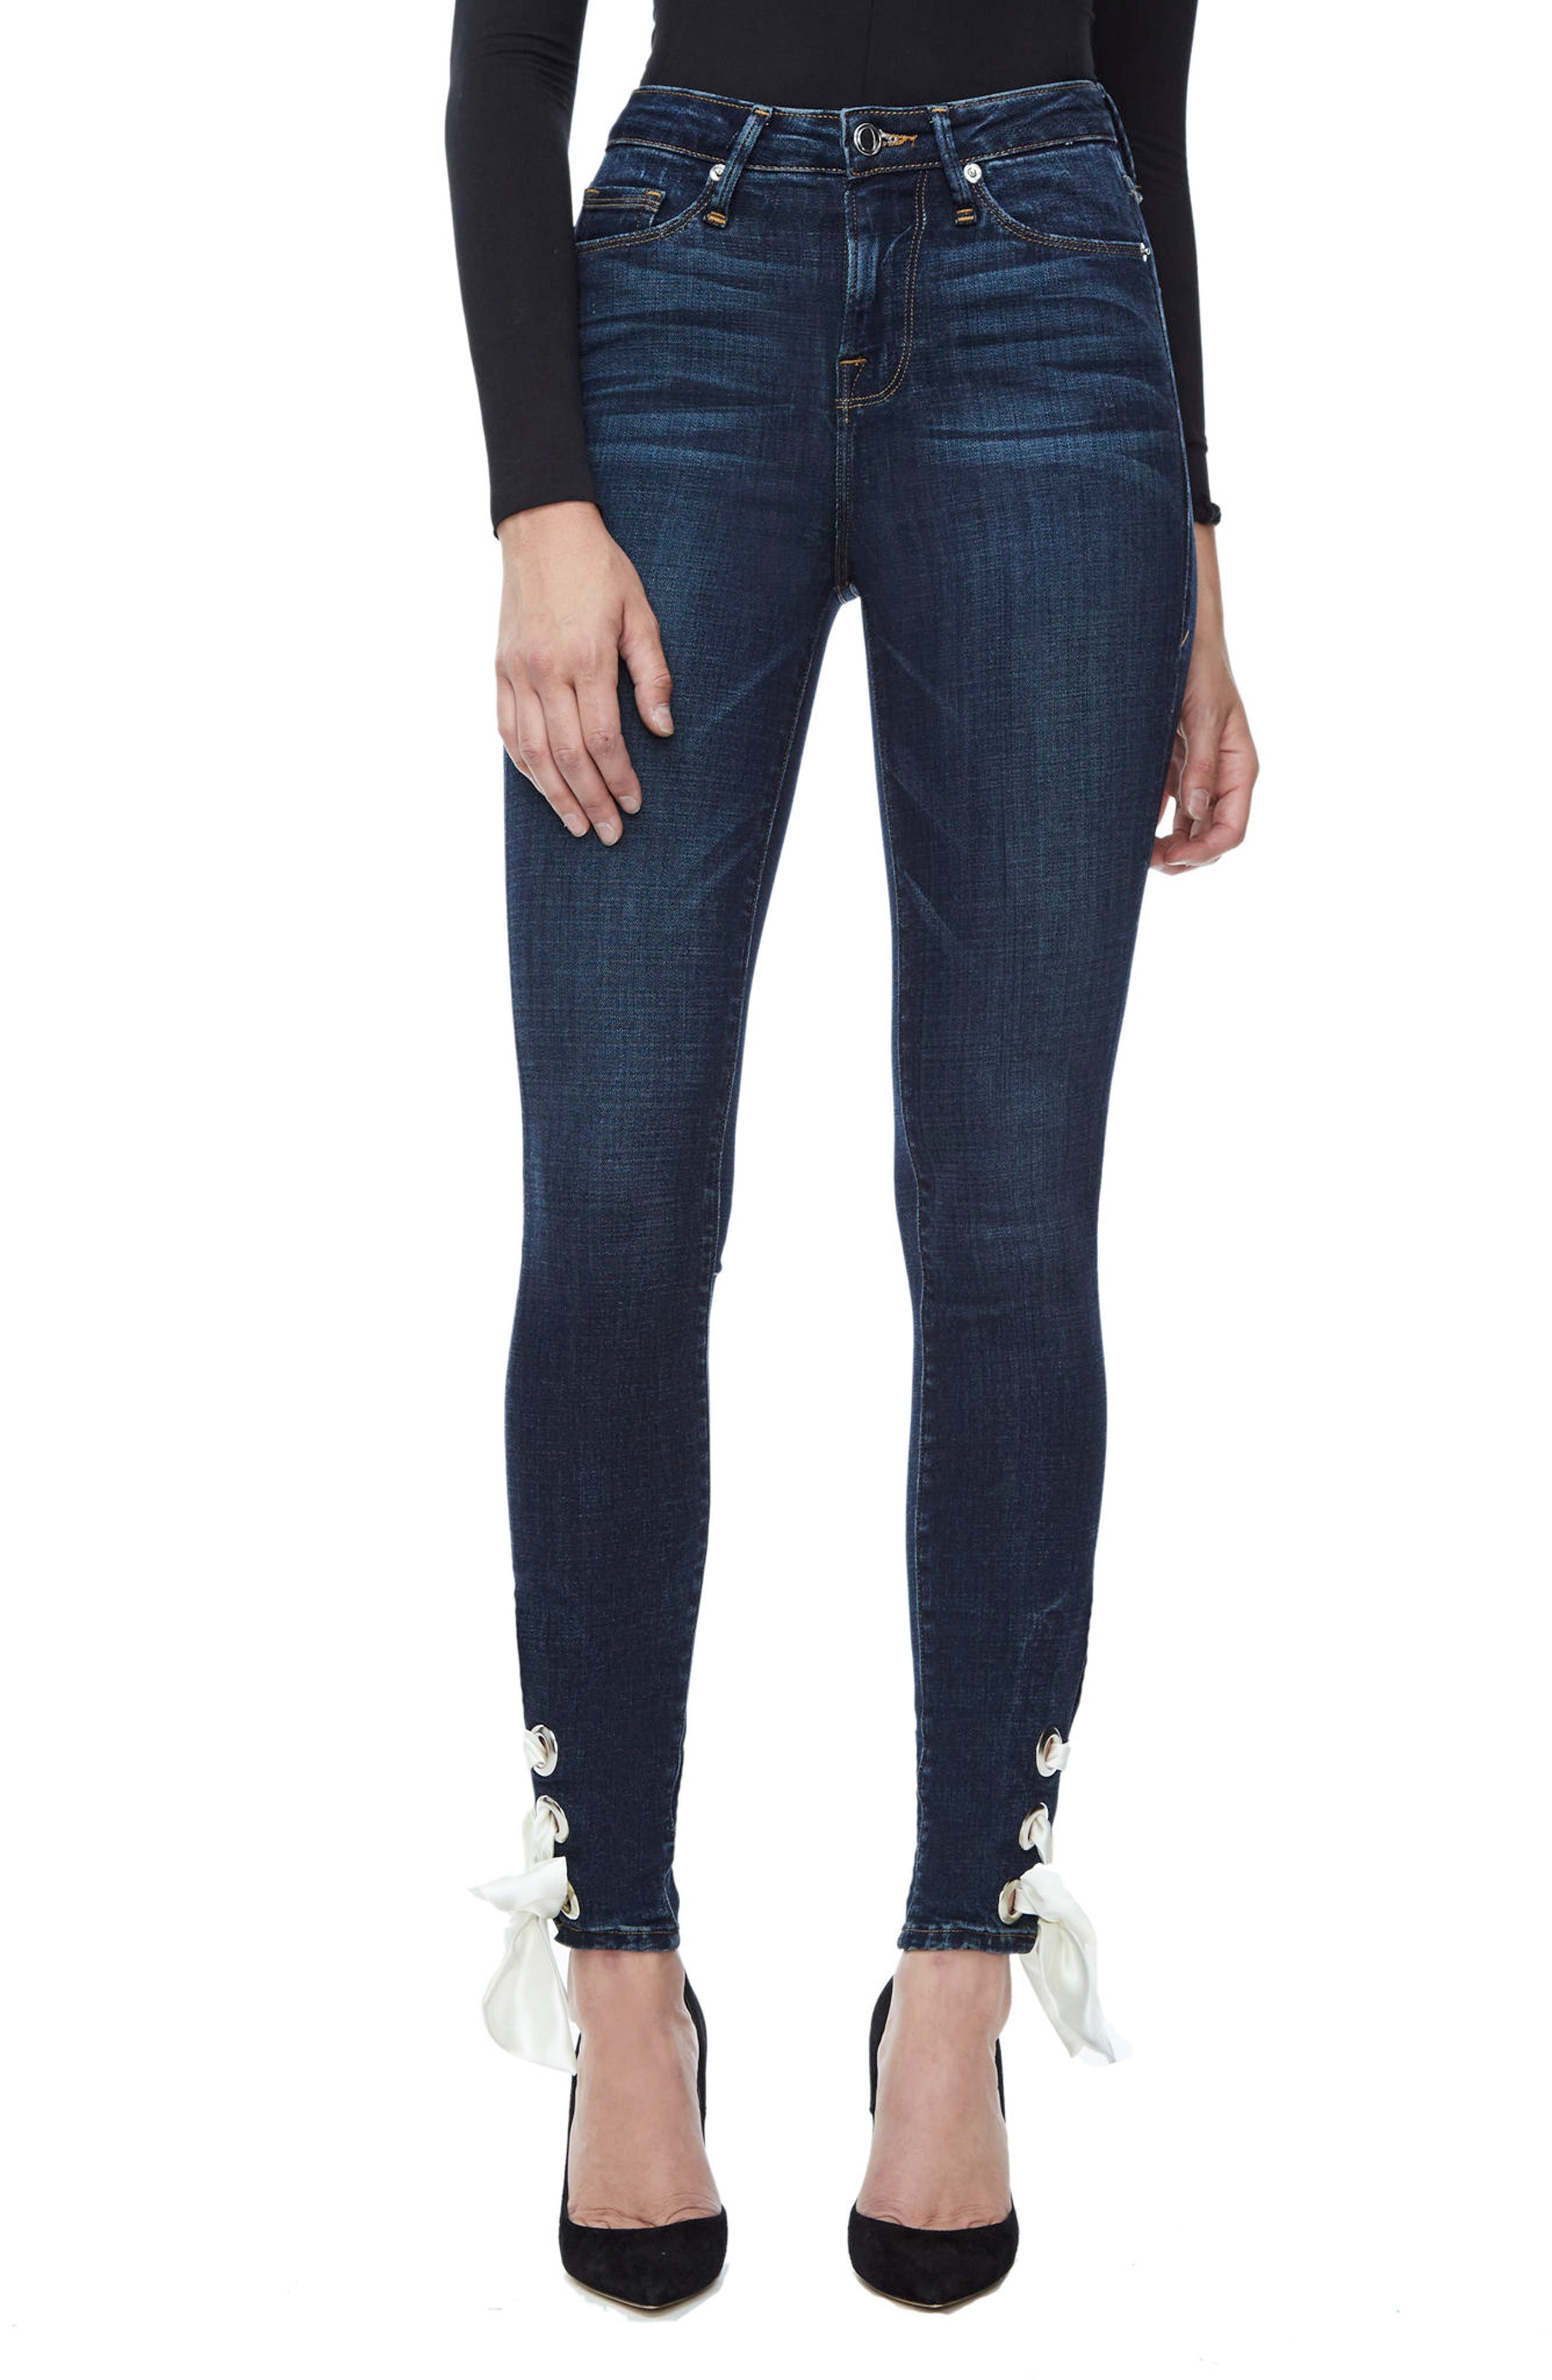 Alternate Image 1 Selected - Good American Good Waist Ultra High Waist Ankle Skinny Jeans (Blue 102) (Regular & Plus Size)